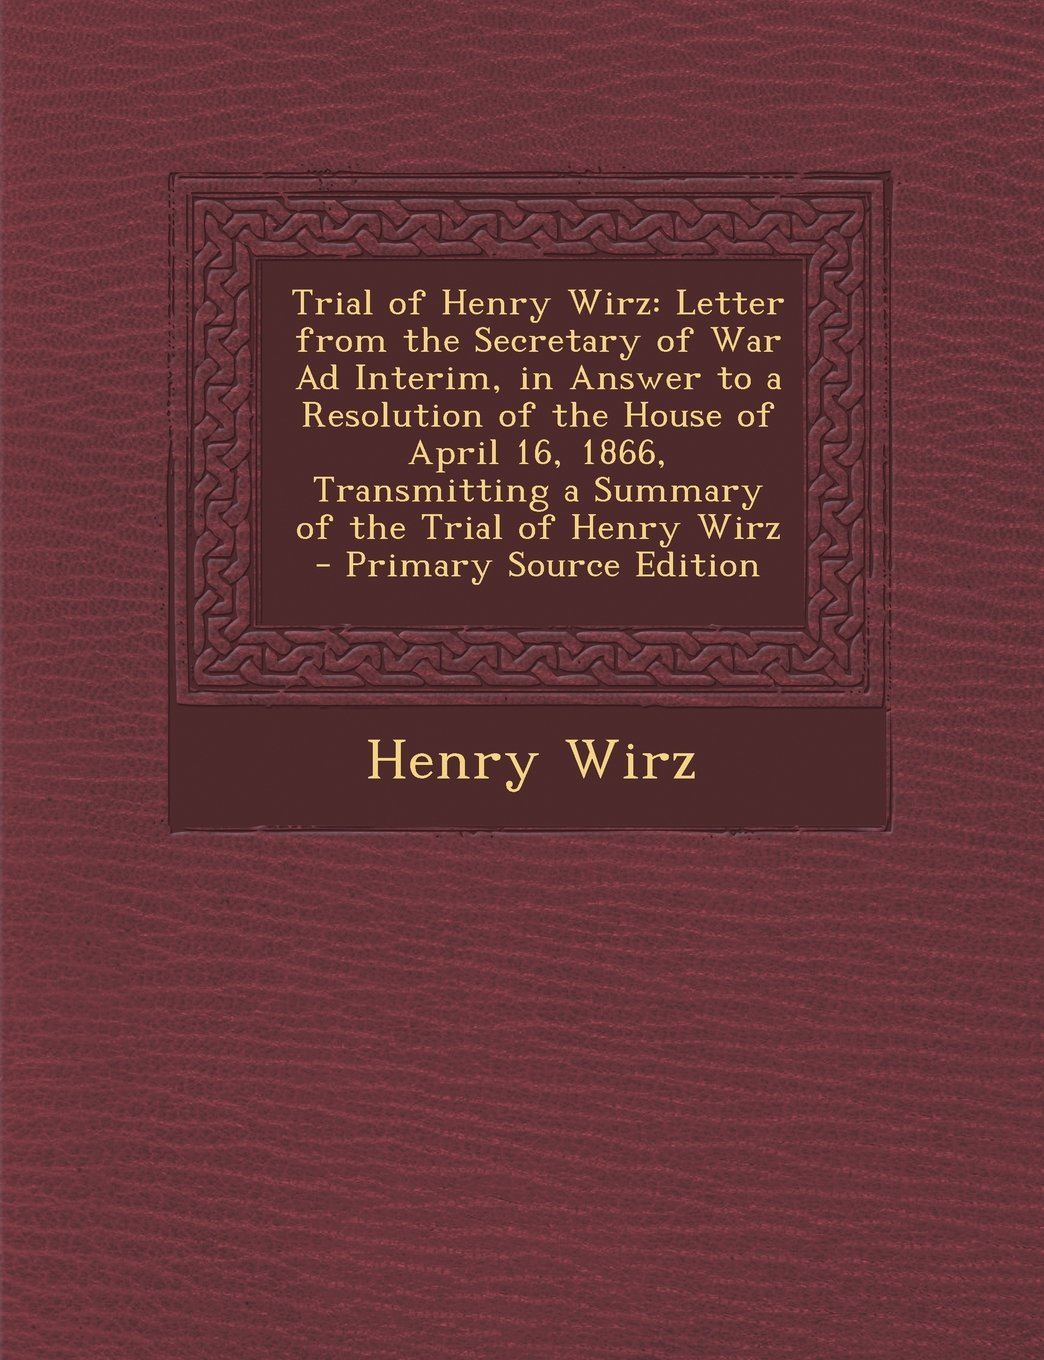 Download Trial of Henry Wirz: Letter from the Secretary of War Ad Interim, in Answer to a Resolution of the House of April 16, 1866, Transmitting a pdf epub